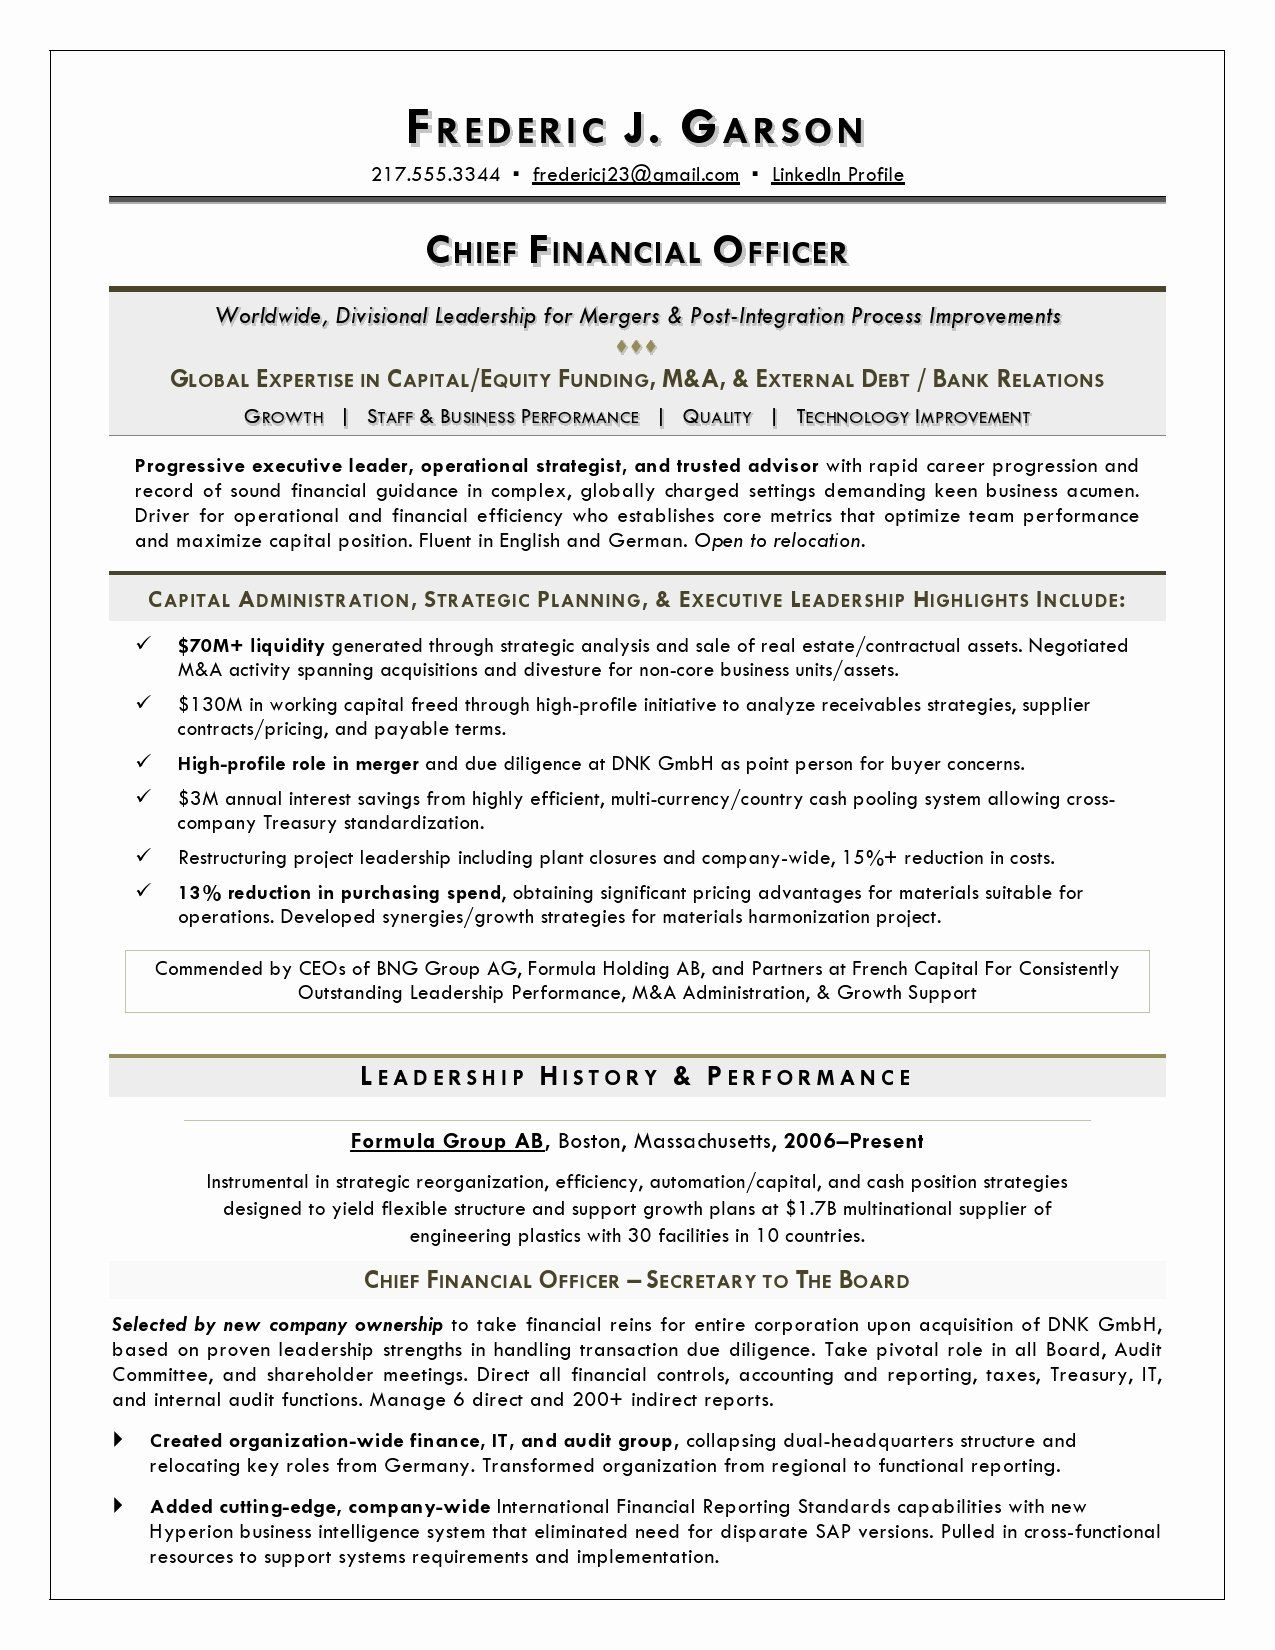 Executive Resume Cover Letter Inspirational Sample Cover Letter For Vp Corporate Strategy Executive Resume In 2020 Executive Resume Resume Examples Job Resume Examples